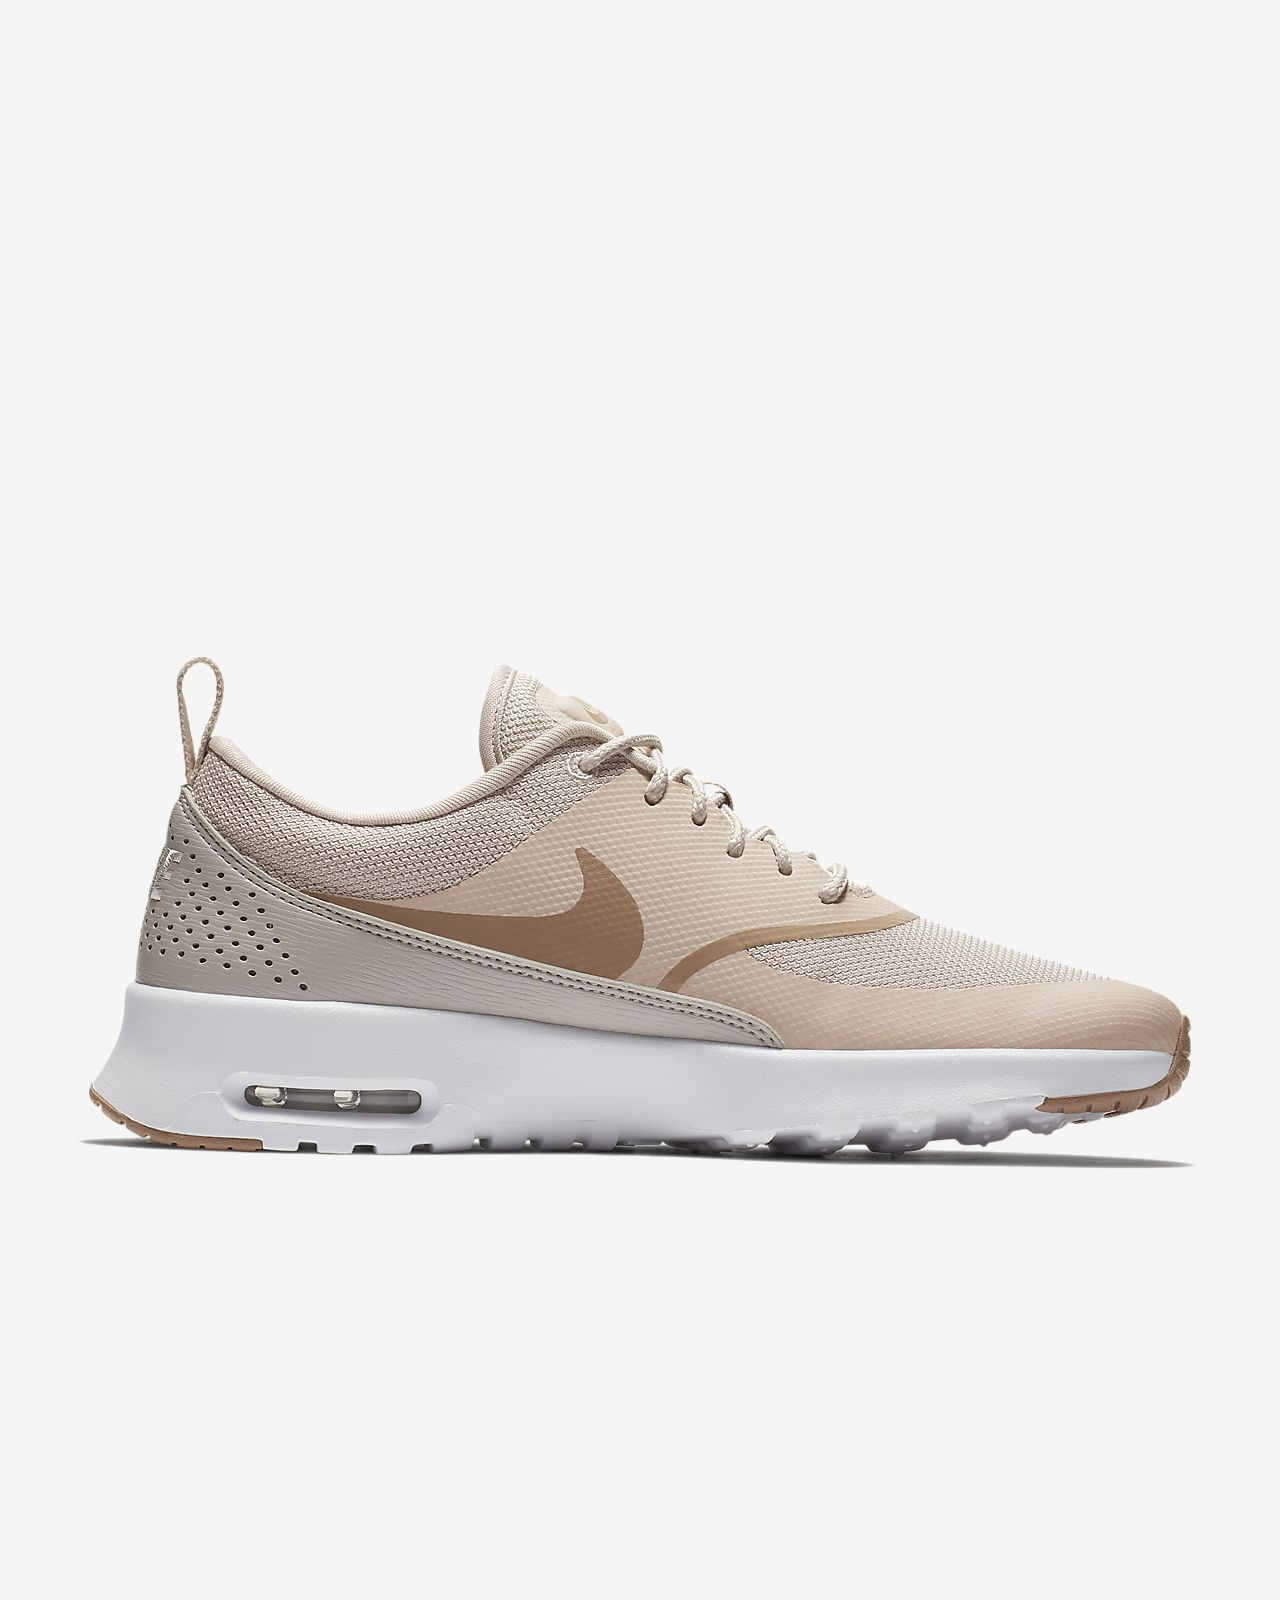 Excellent Nike Air Max Thea Shoes Women Obsidian White N230702